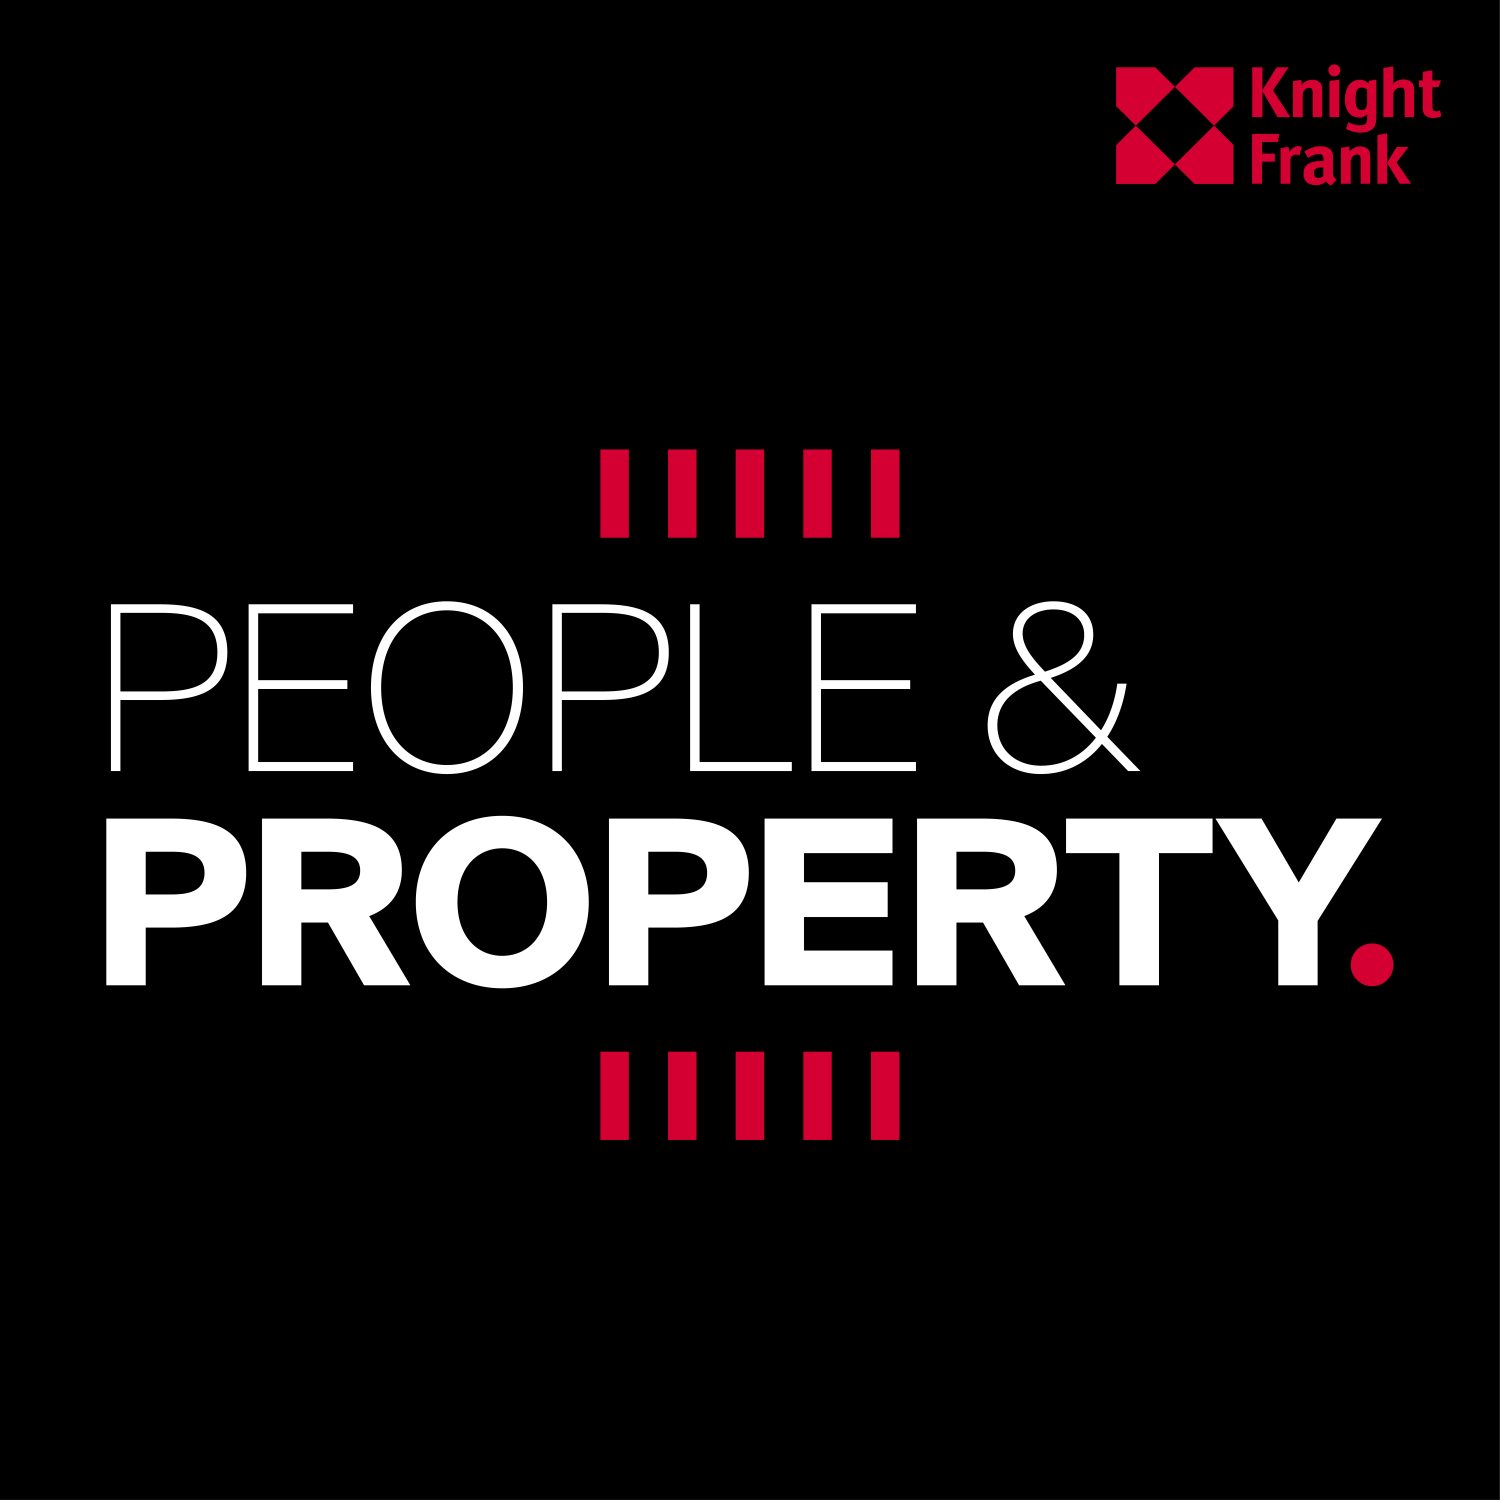 Couverture du podcast People & Property, podcast sur l'immobilier d'entreprise produit par Knight Frank